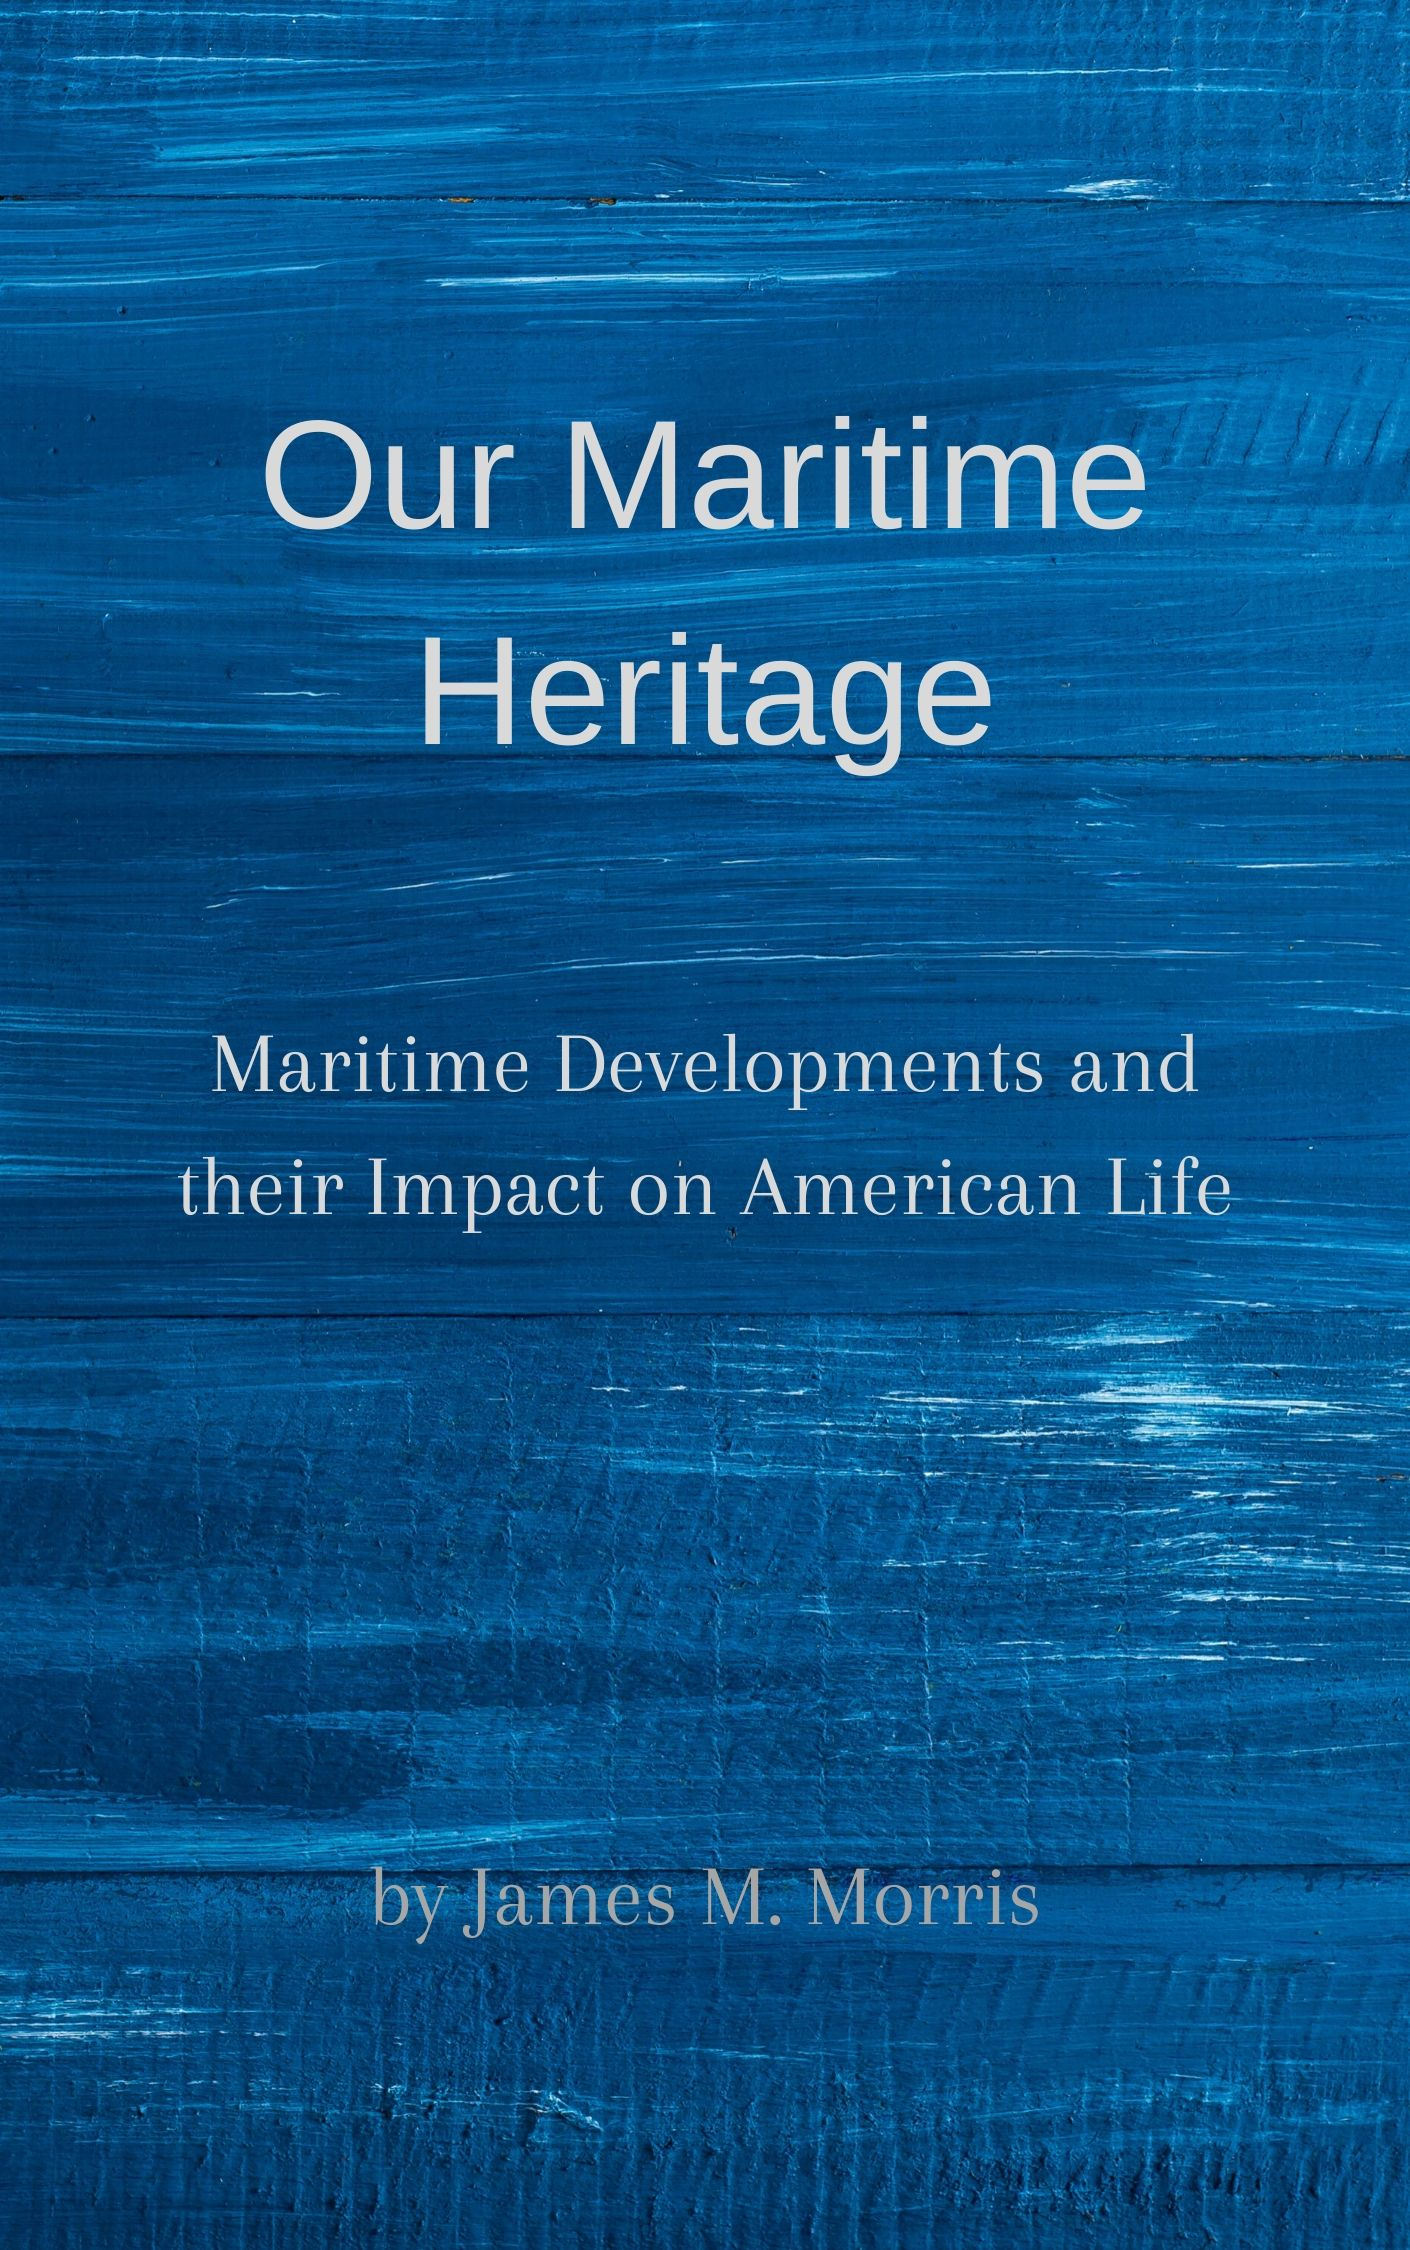 Our Maritime Heritage: Maritime Developments and their Impact on American Life